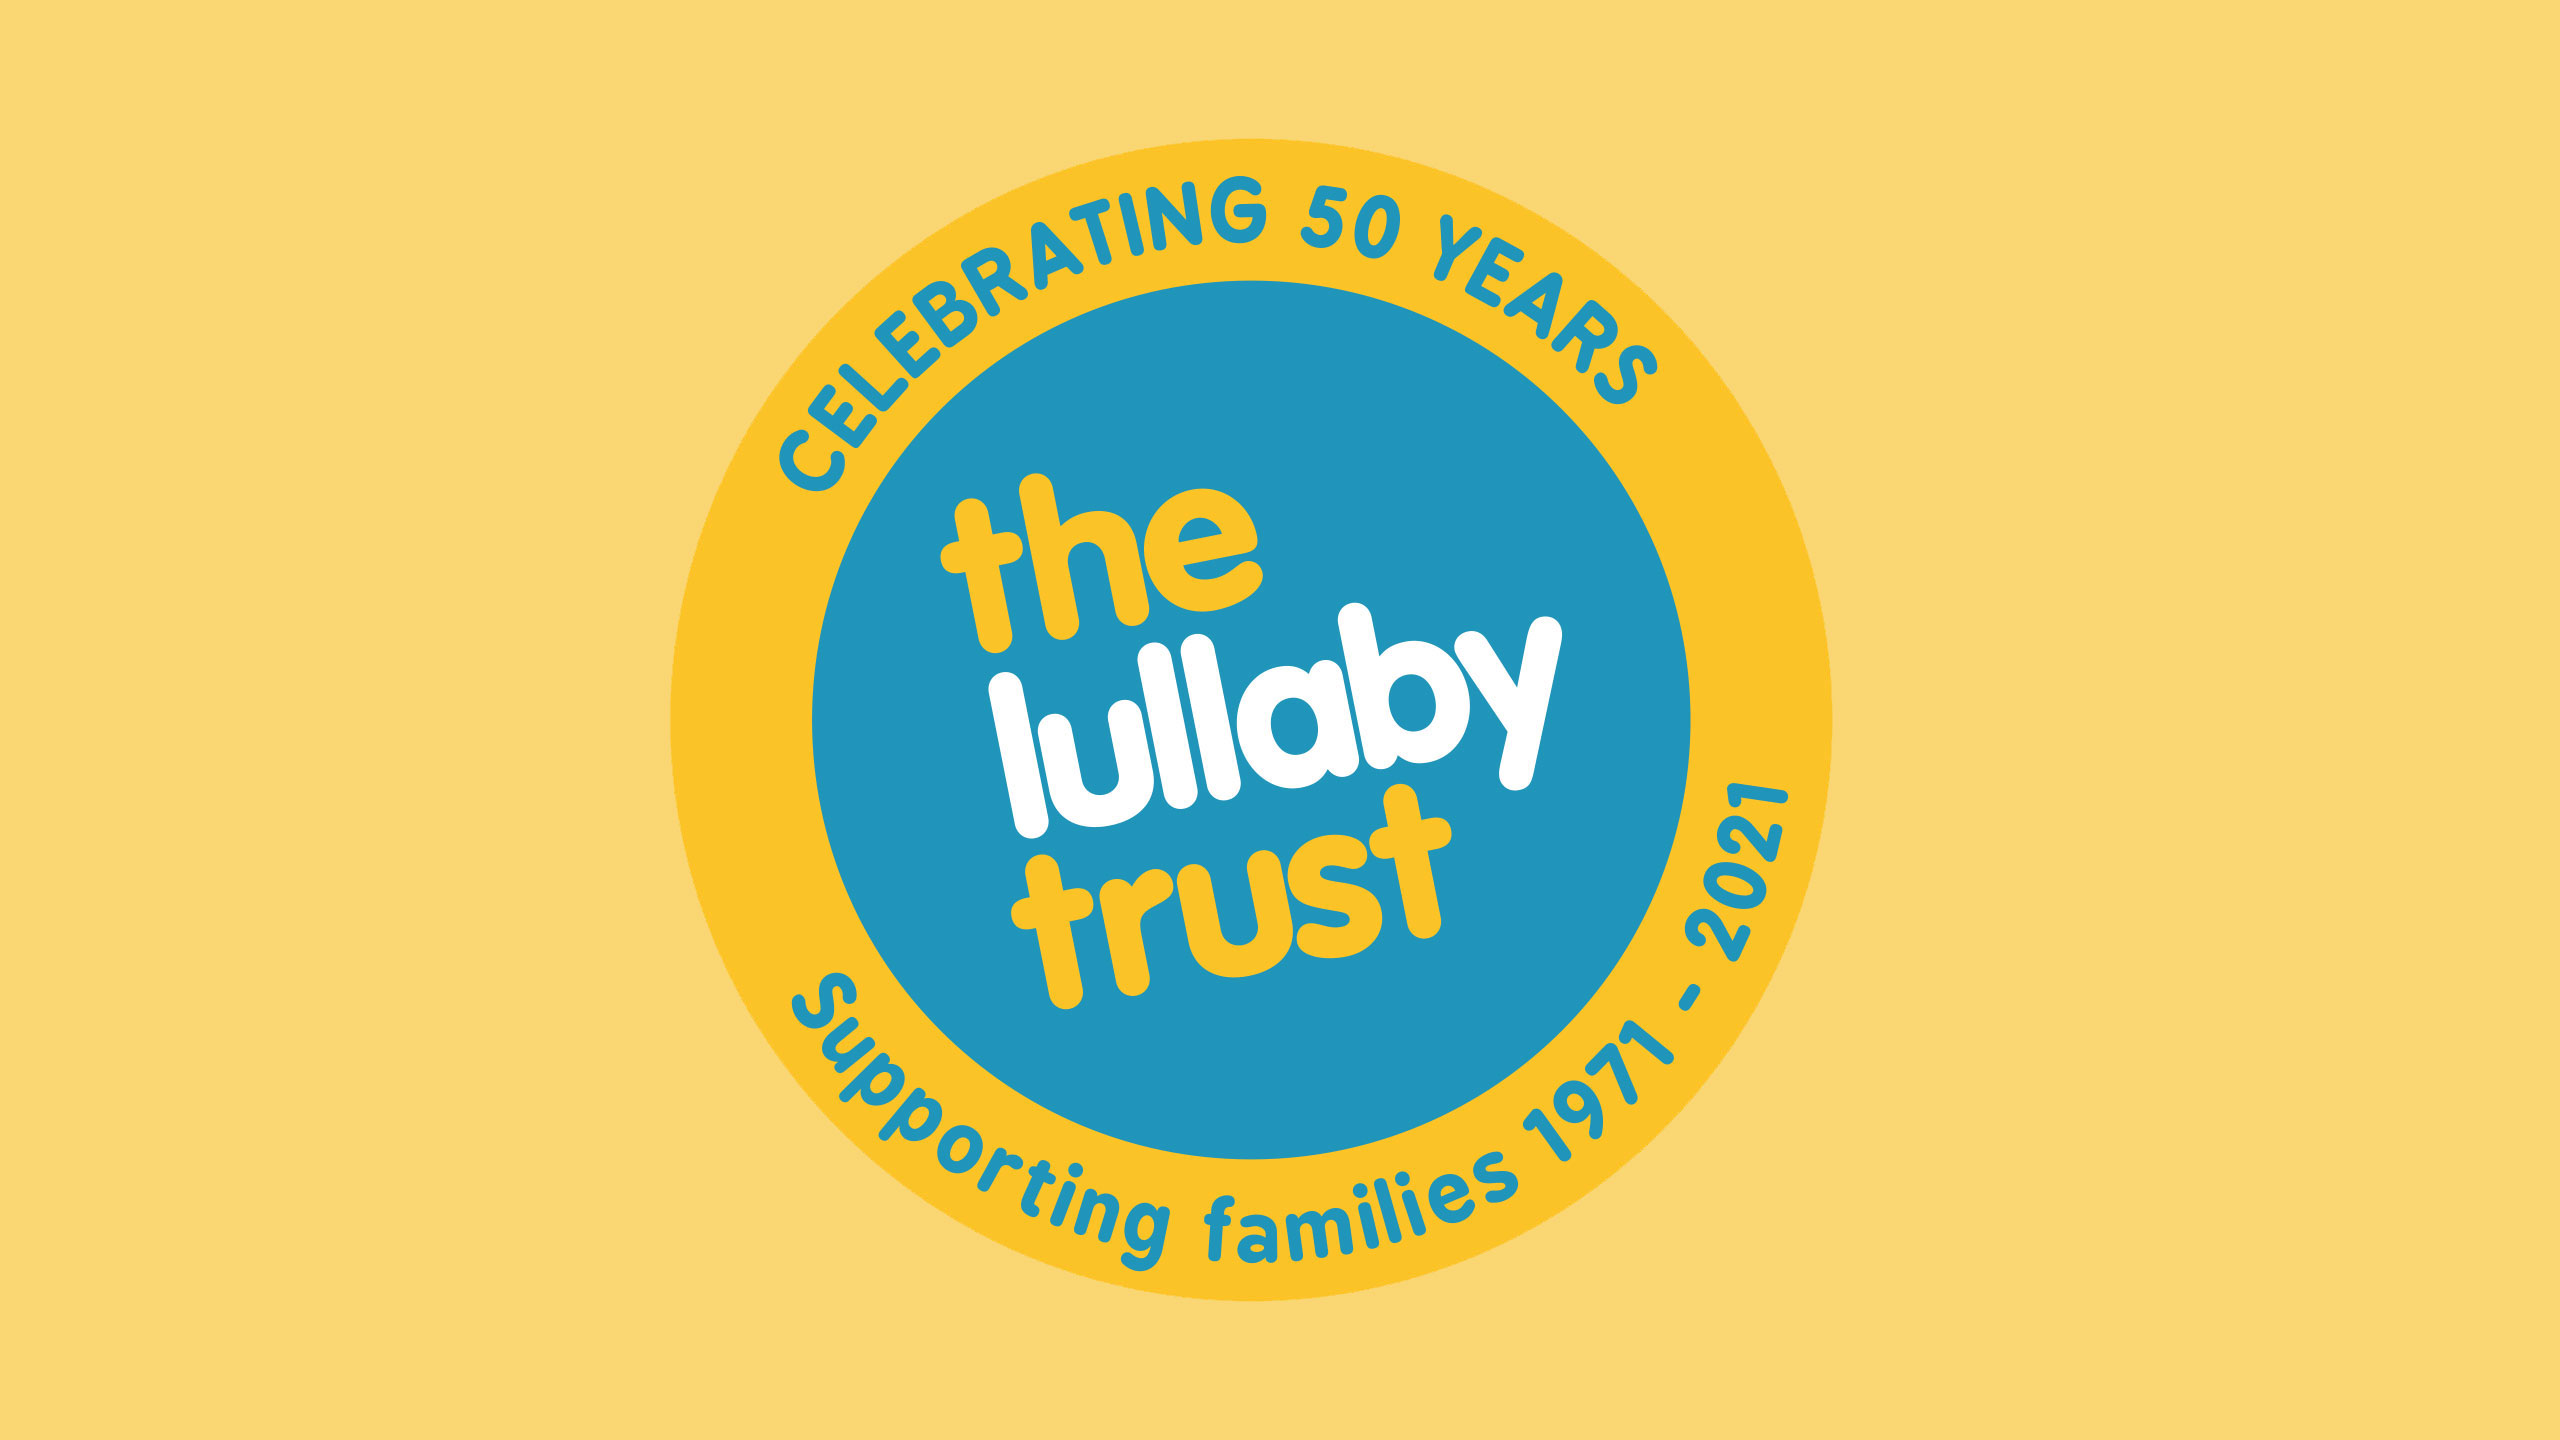 lullaby-trust-50th-anniversary-logo-on-yell-background